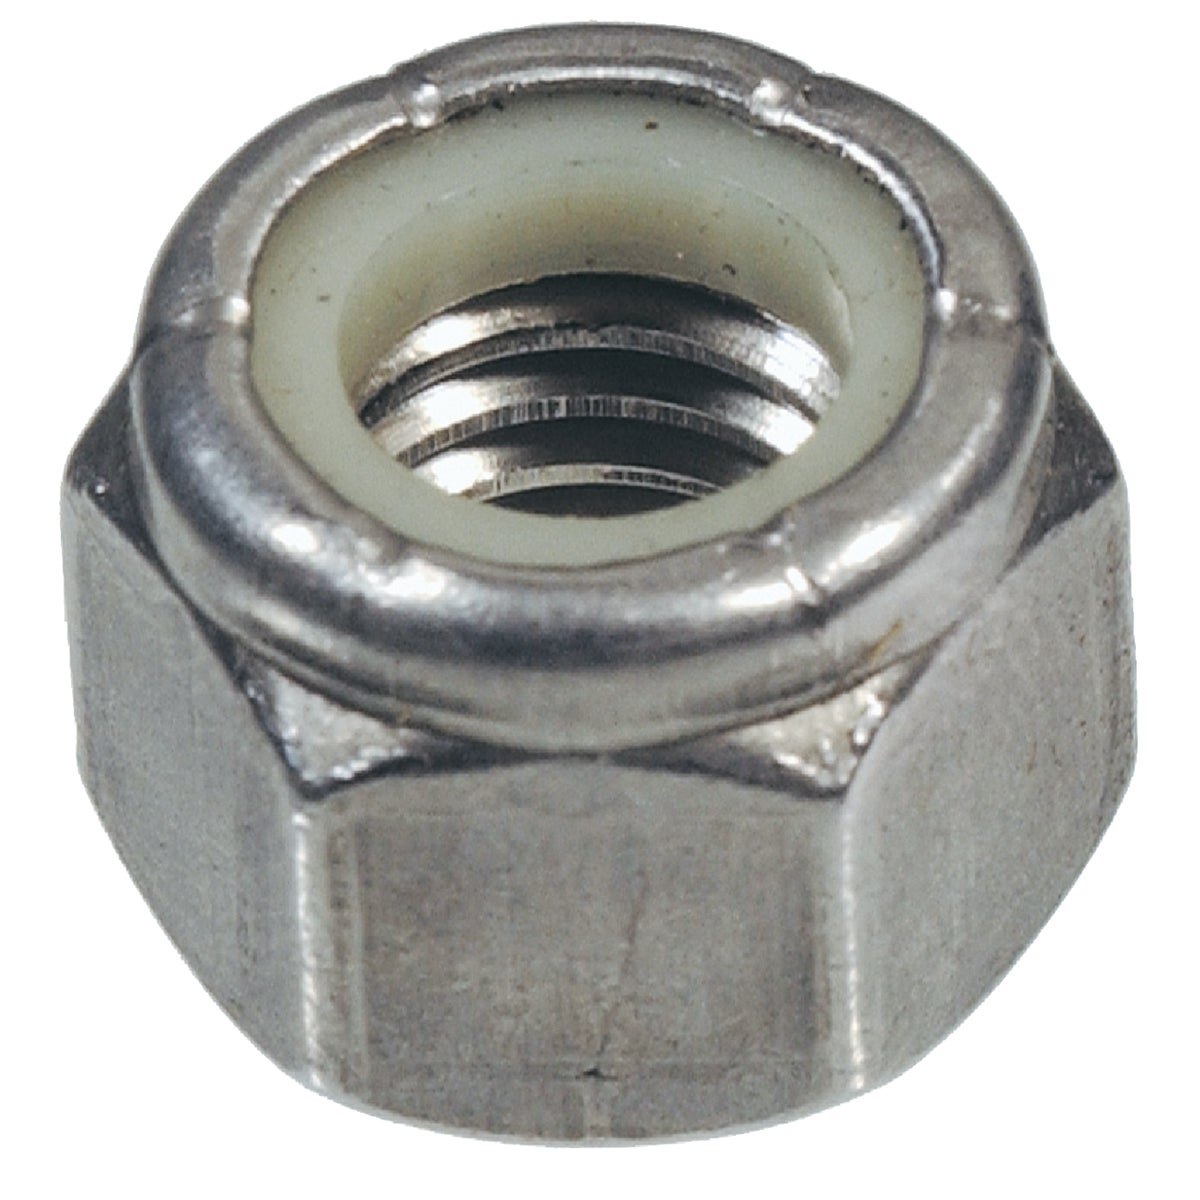 1/2-13 SS NYLON LOCK NUT - 829728 by Hillman Fastener